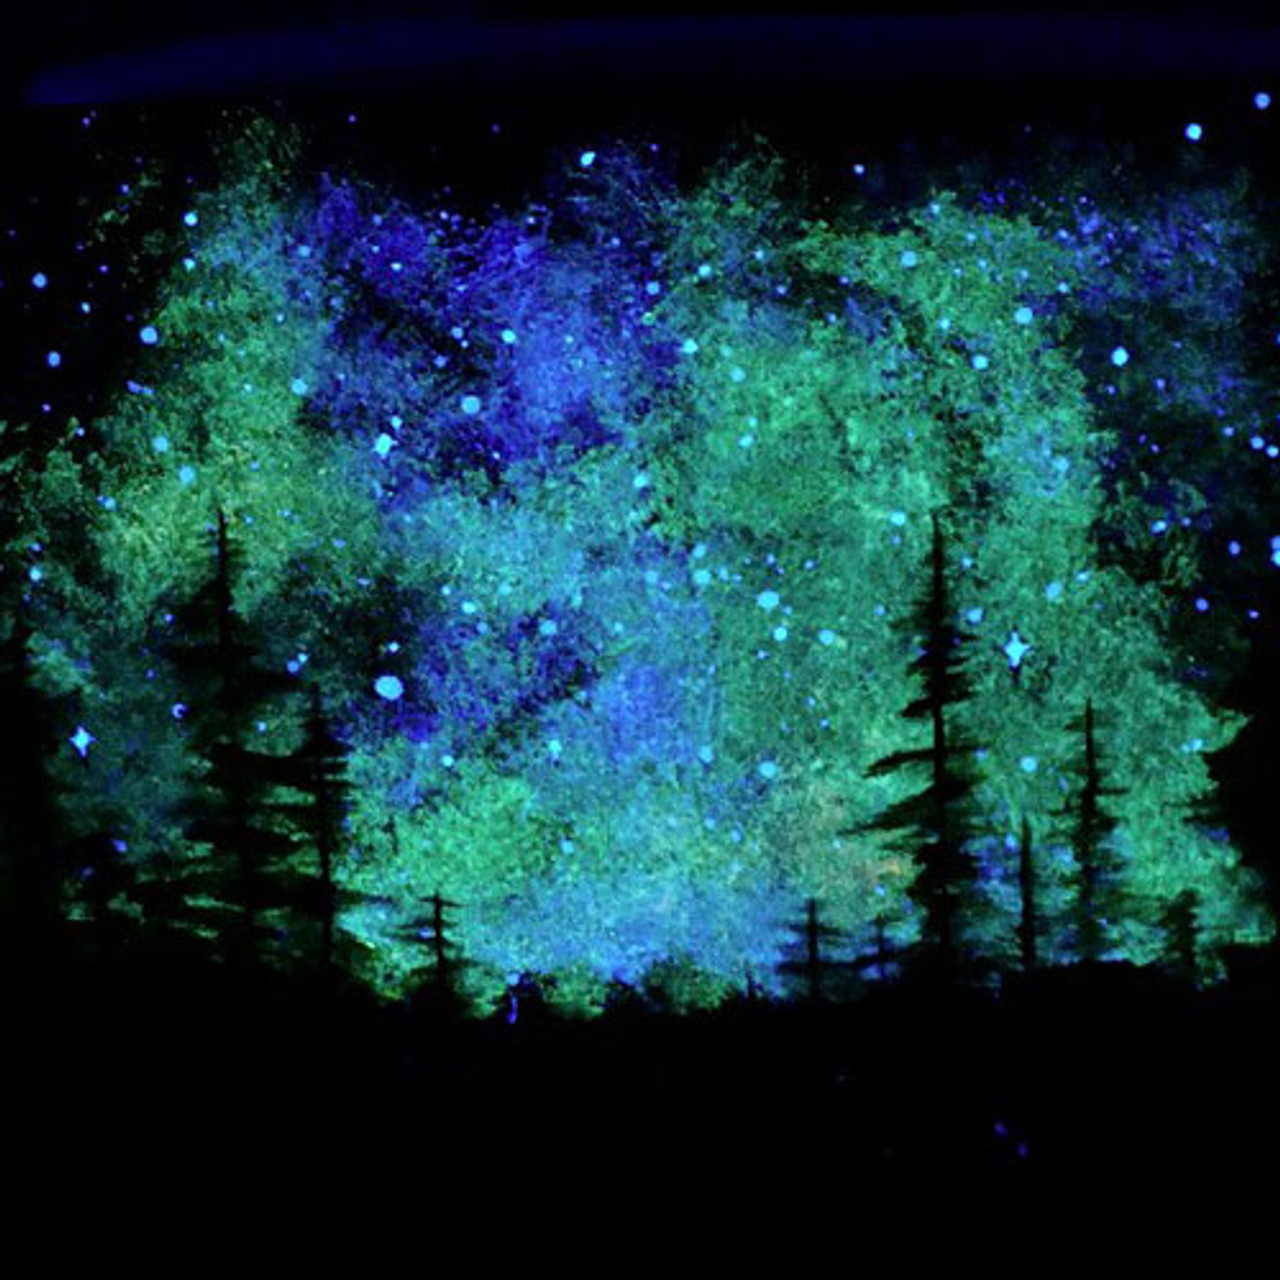 Blue Glow In The Dark Paint Brightest Blue Glow Paint